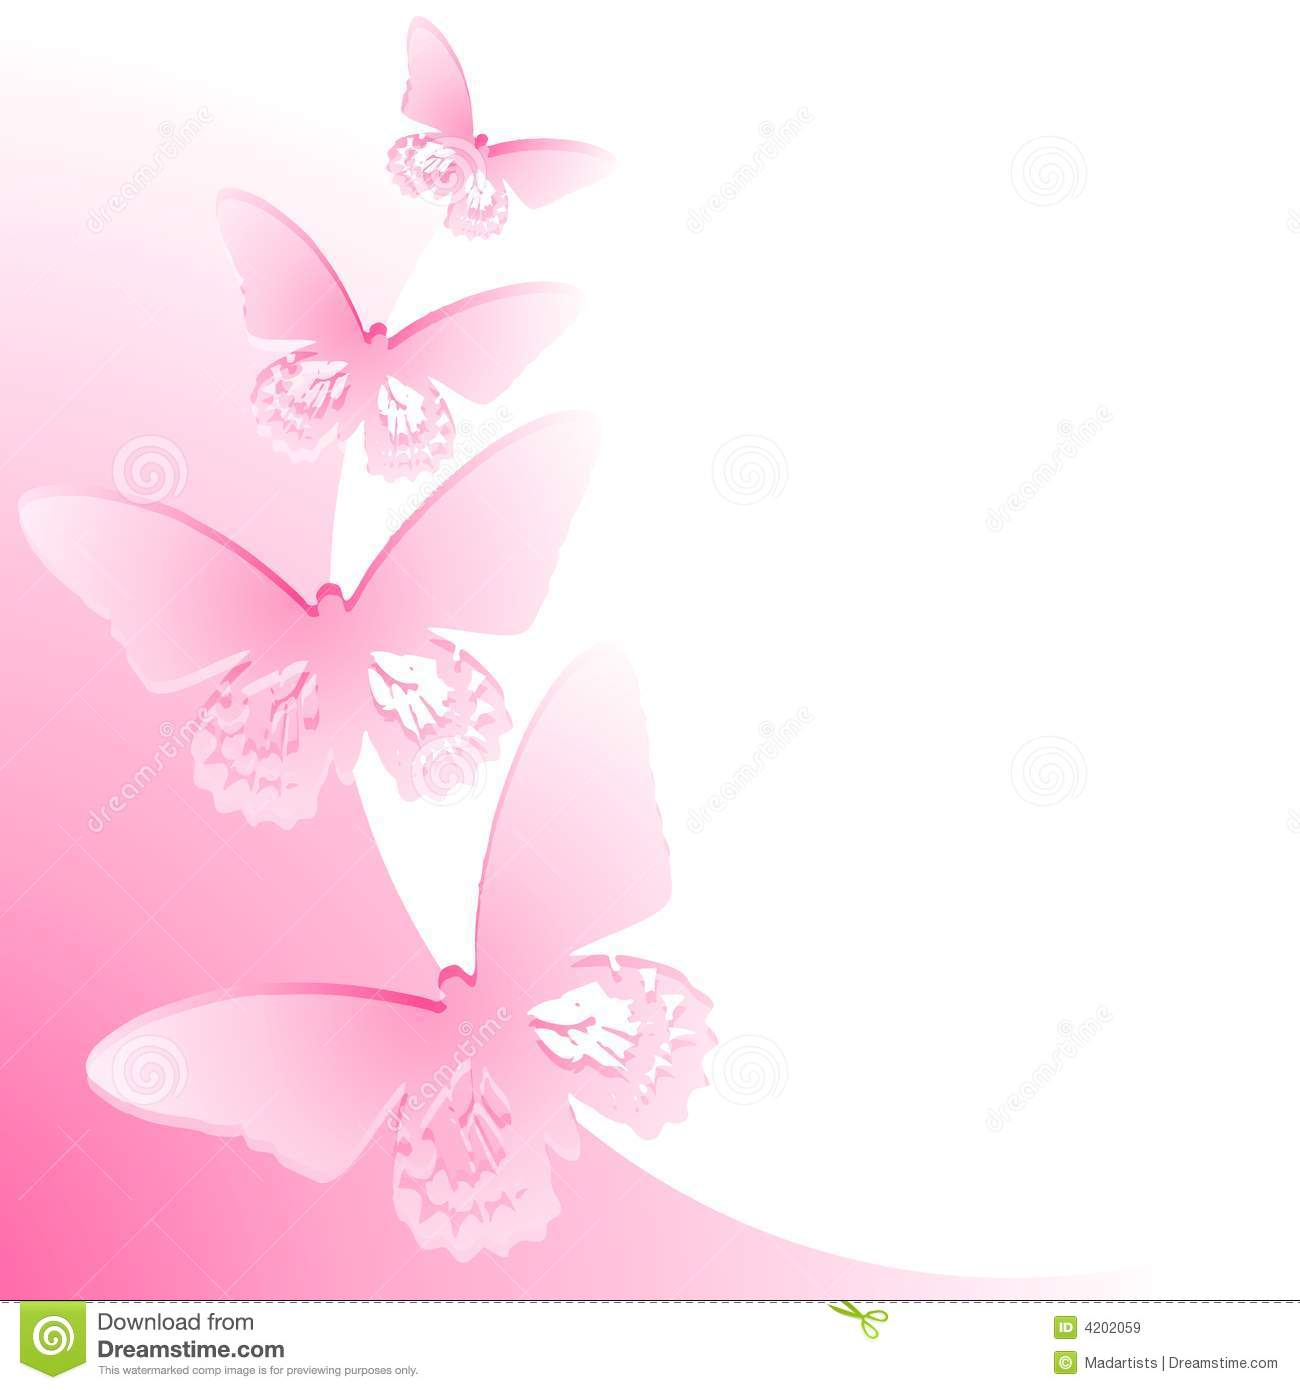 Breast Cancer 3d Wallpaper For Pc Frontera Rosada De La Mariposa Stock De Ilustraci 243 N